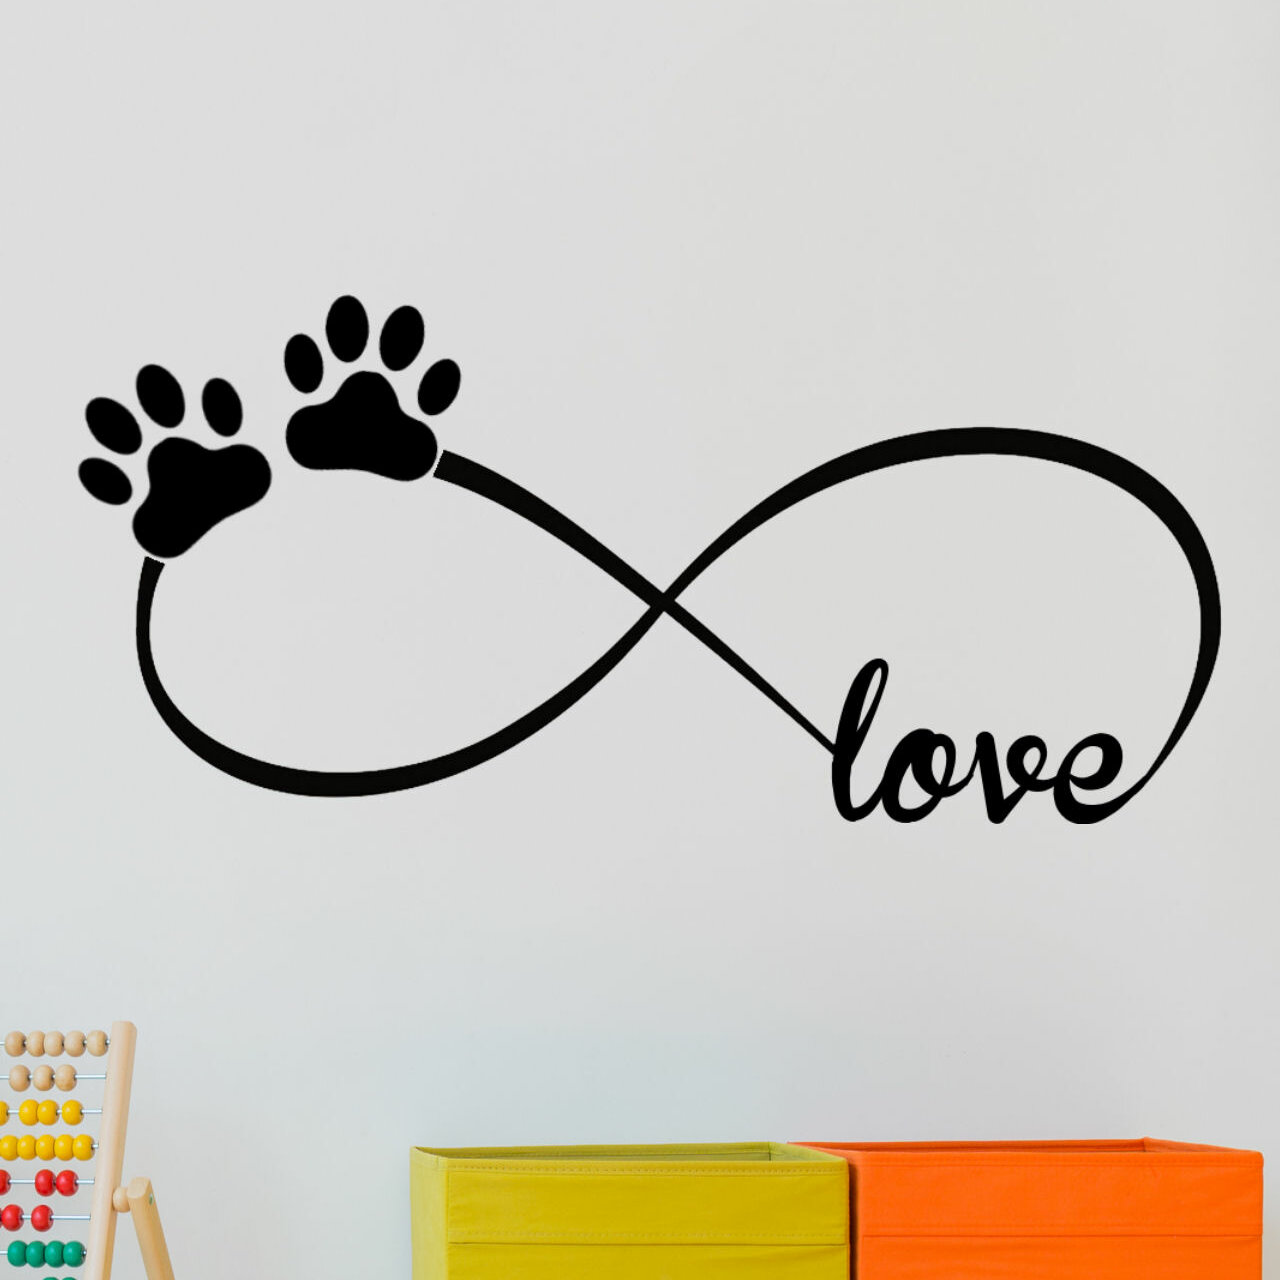 LOVE HAS FOUR PAWS wall stickers 4 decals room decor animal lover cat dog prints